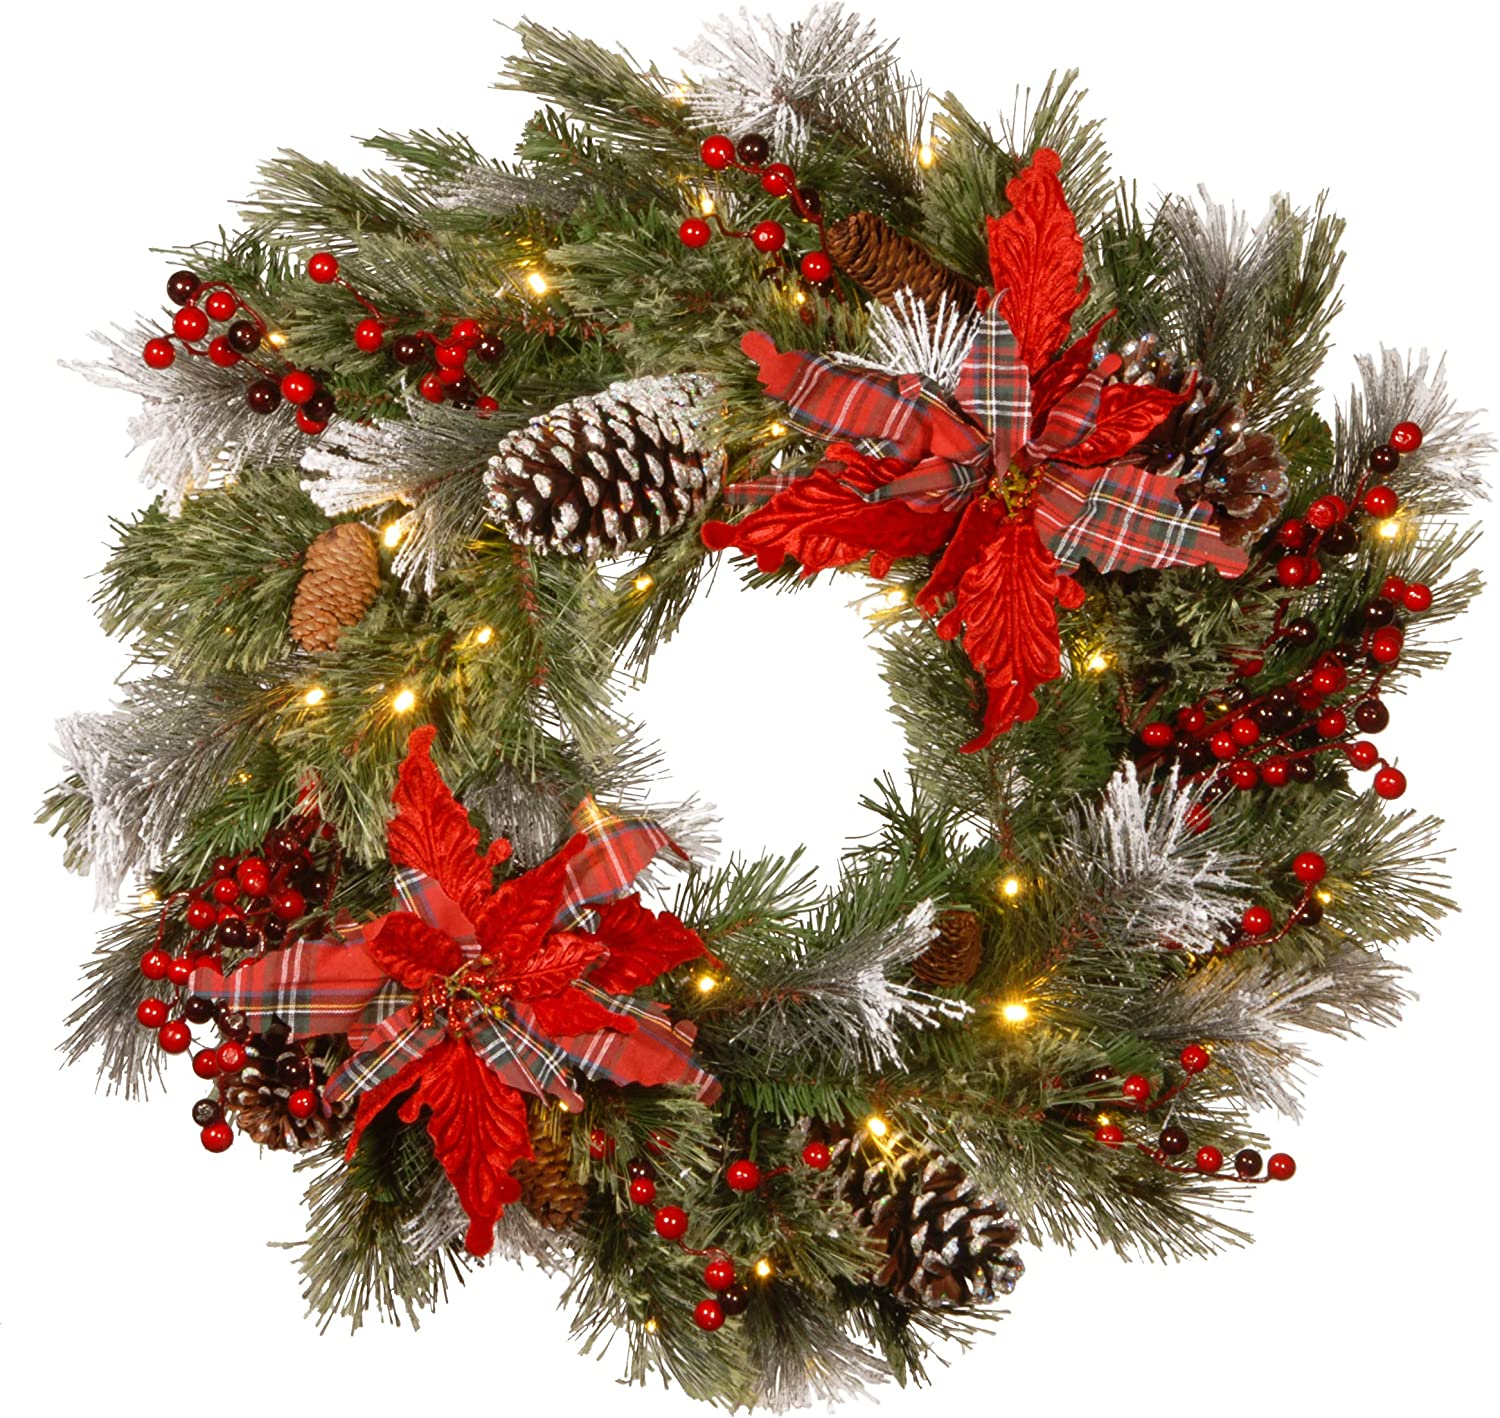 Amazon Com National Tree Company Pre Lit Artificial Christmas Wreath Decorative Collection Flocked With Mixed Decorations And Pre Strung Led Lights Tartan Plaid 24 Inch Home Kitchen